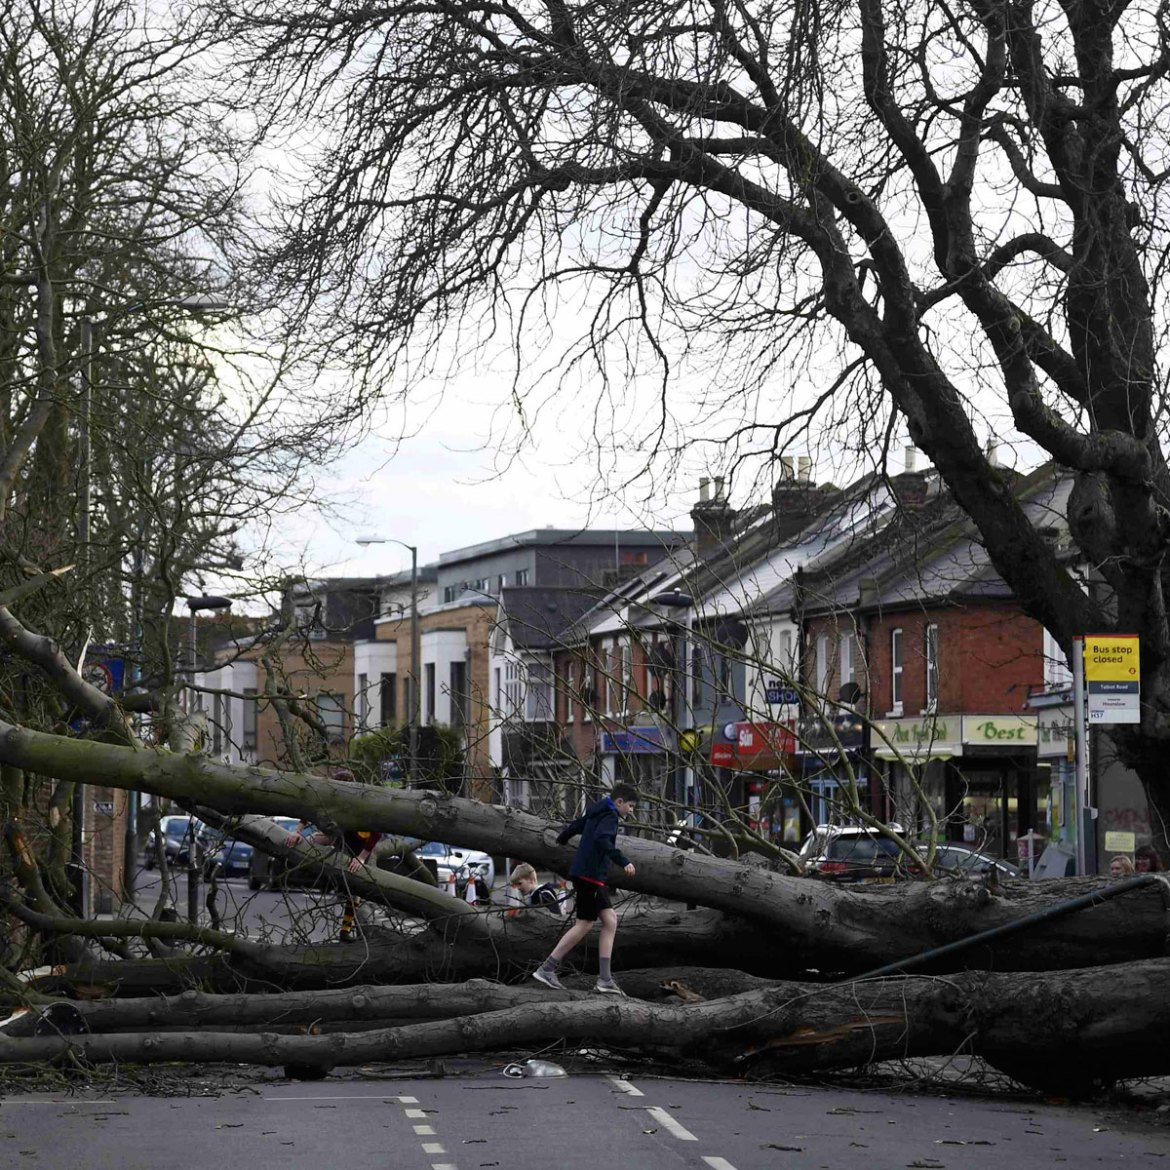 Storm Doris raged through England bringing down more than one mature tree. This one lies across a main road in Isleworth, London. [Toby Melville/REUTERS]